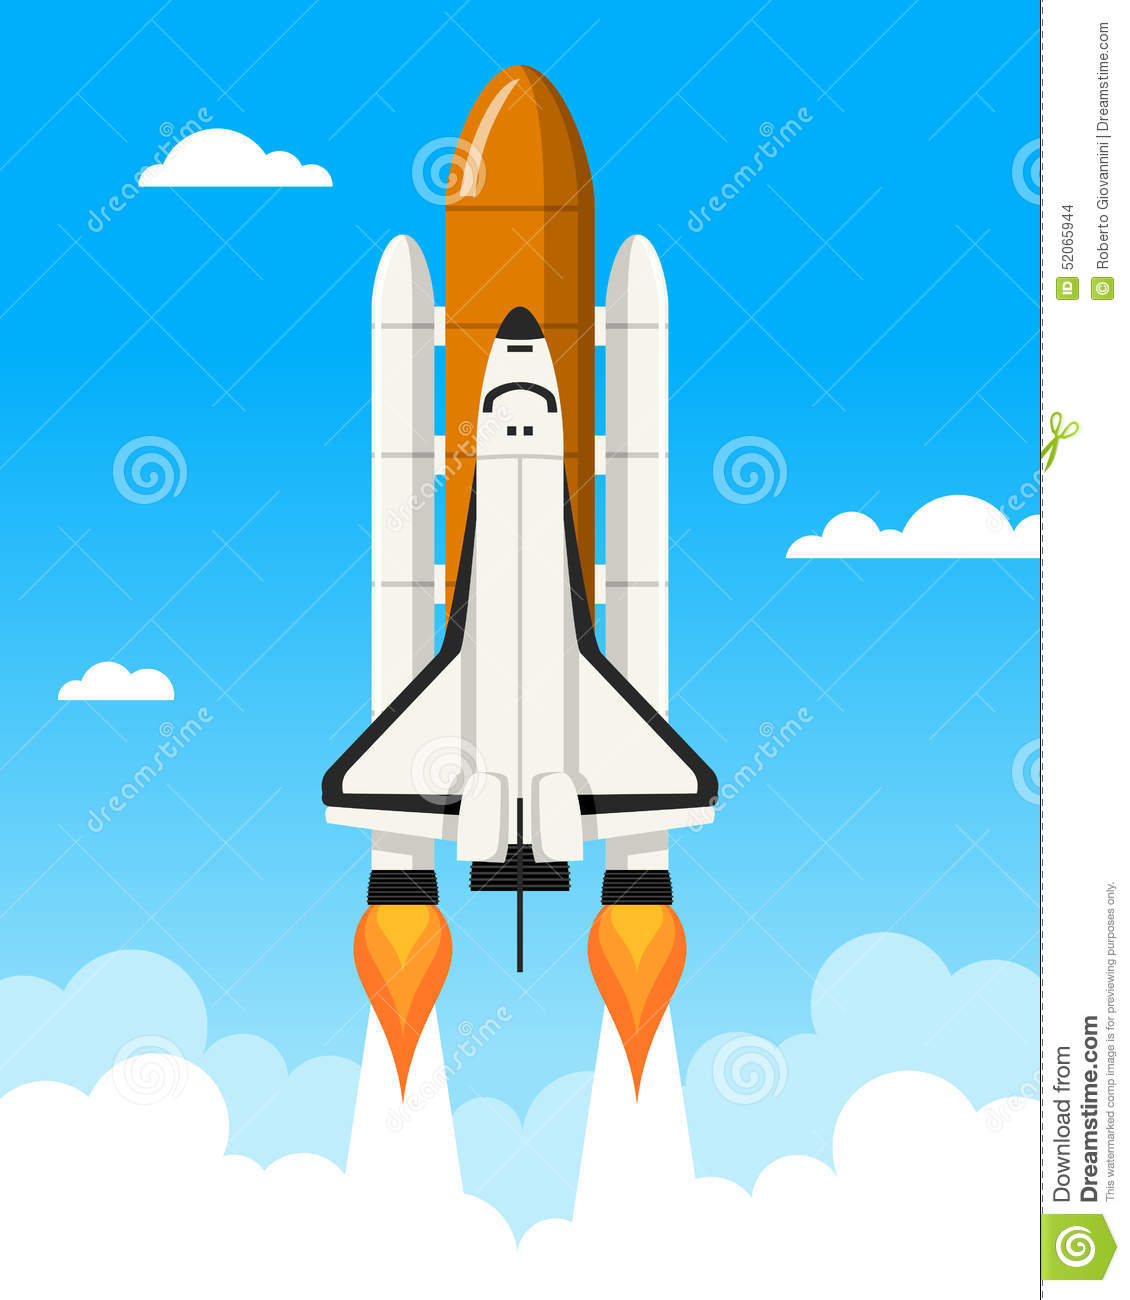 new space shuttle illustration - photo #5